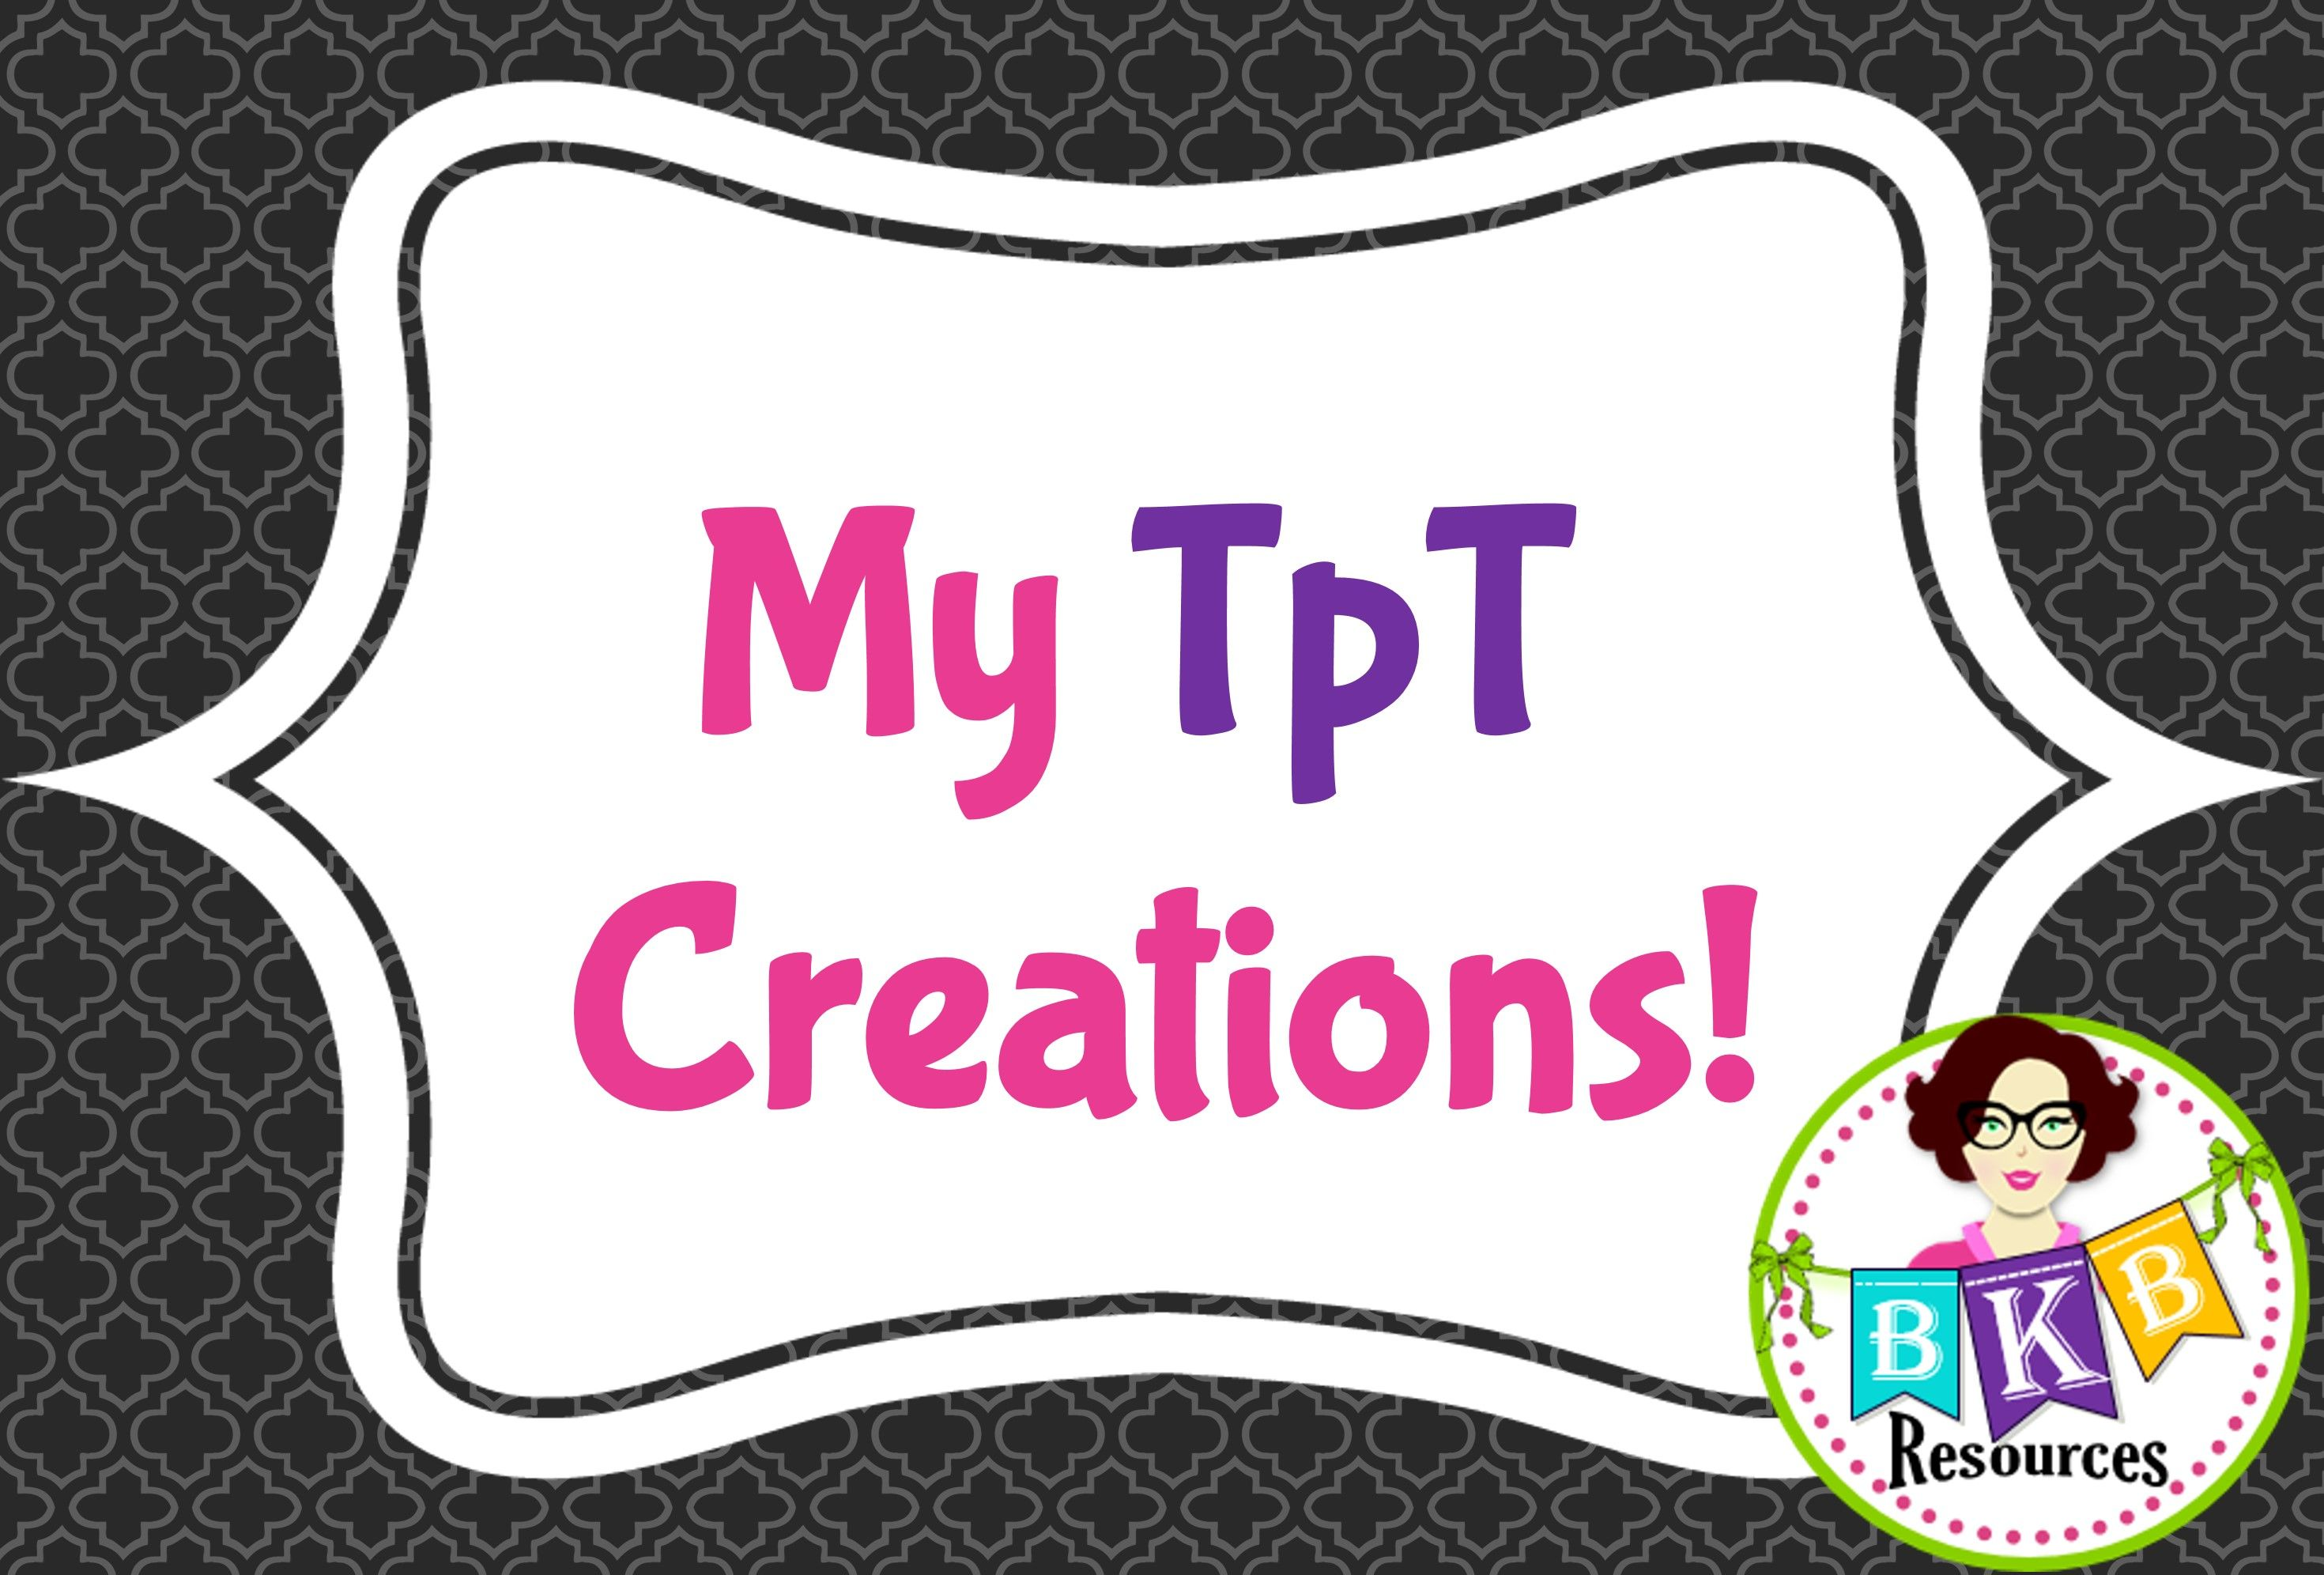 All My Tpt Creations